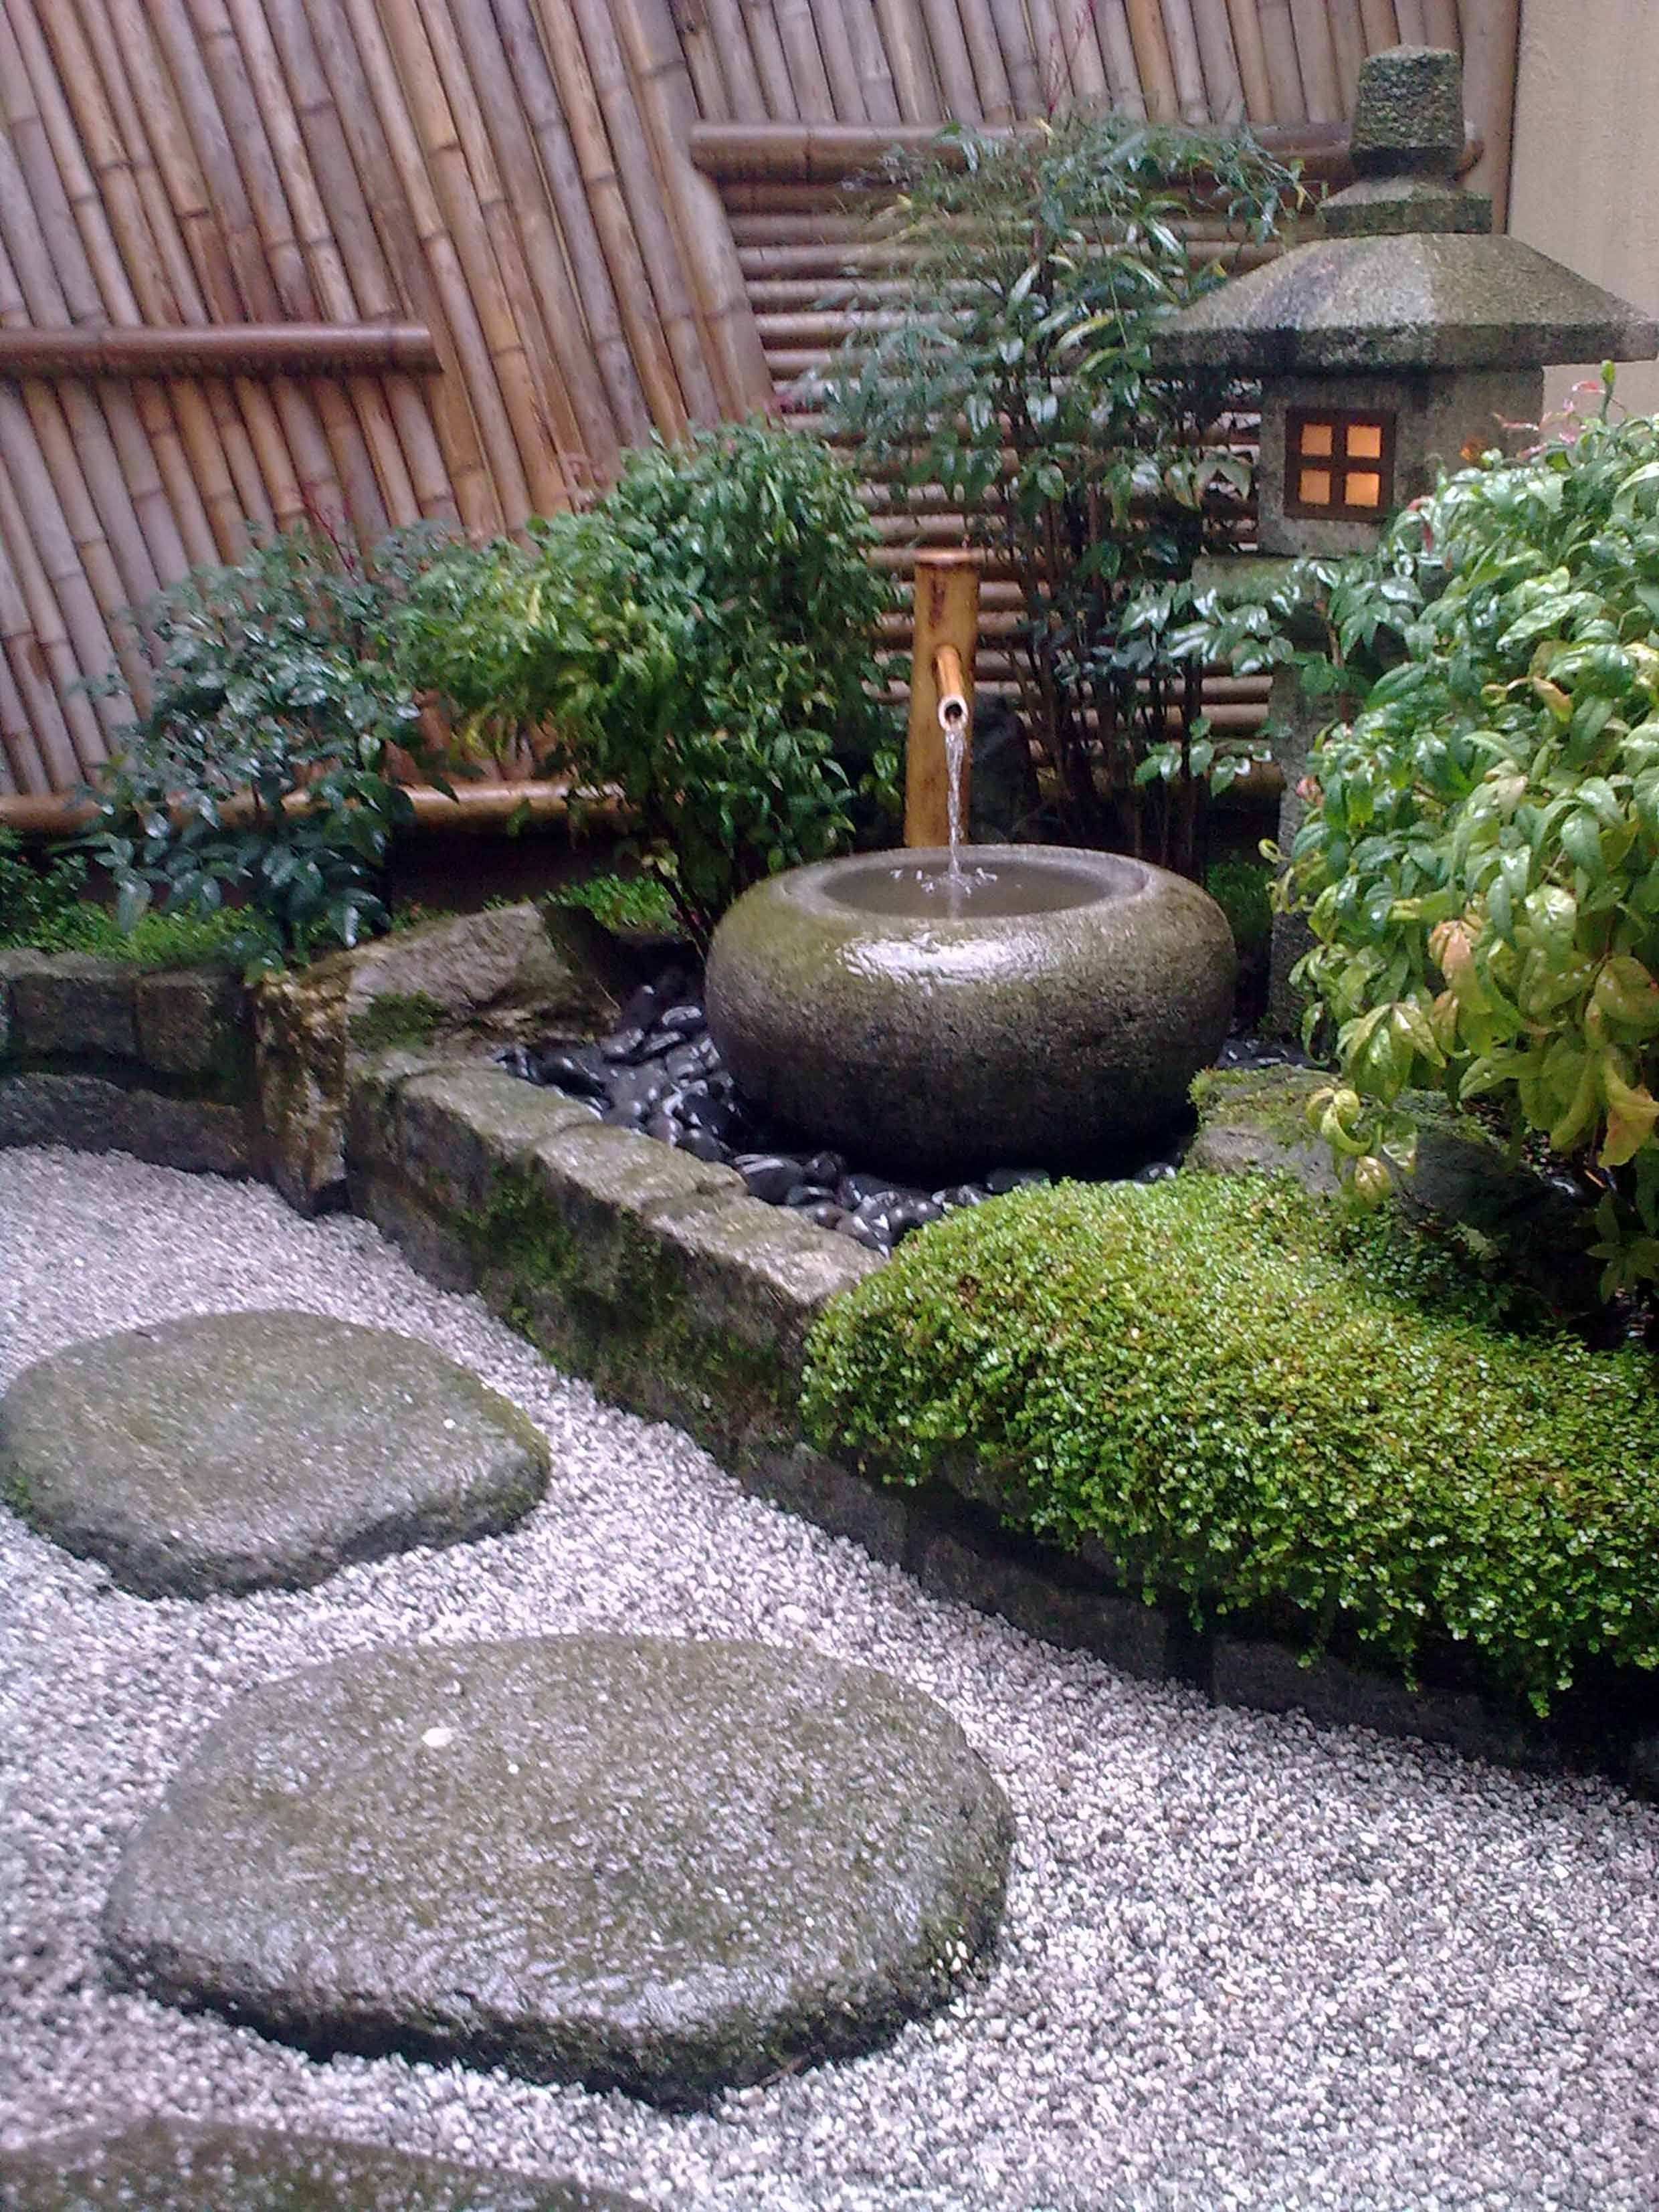 76 Beautiful Zen Garden Ideas For Backyard 400 | Japanese Gardens in Zen Garden Ideas And Photos